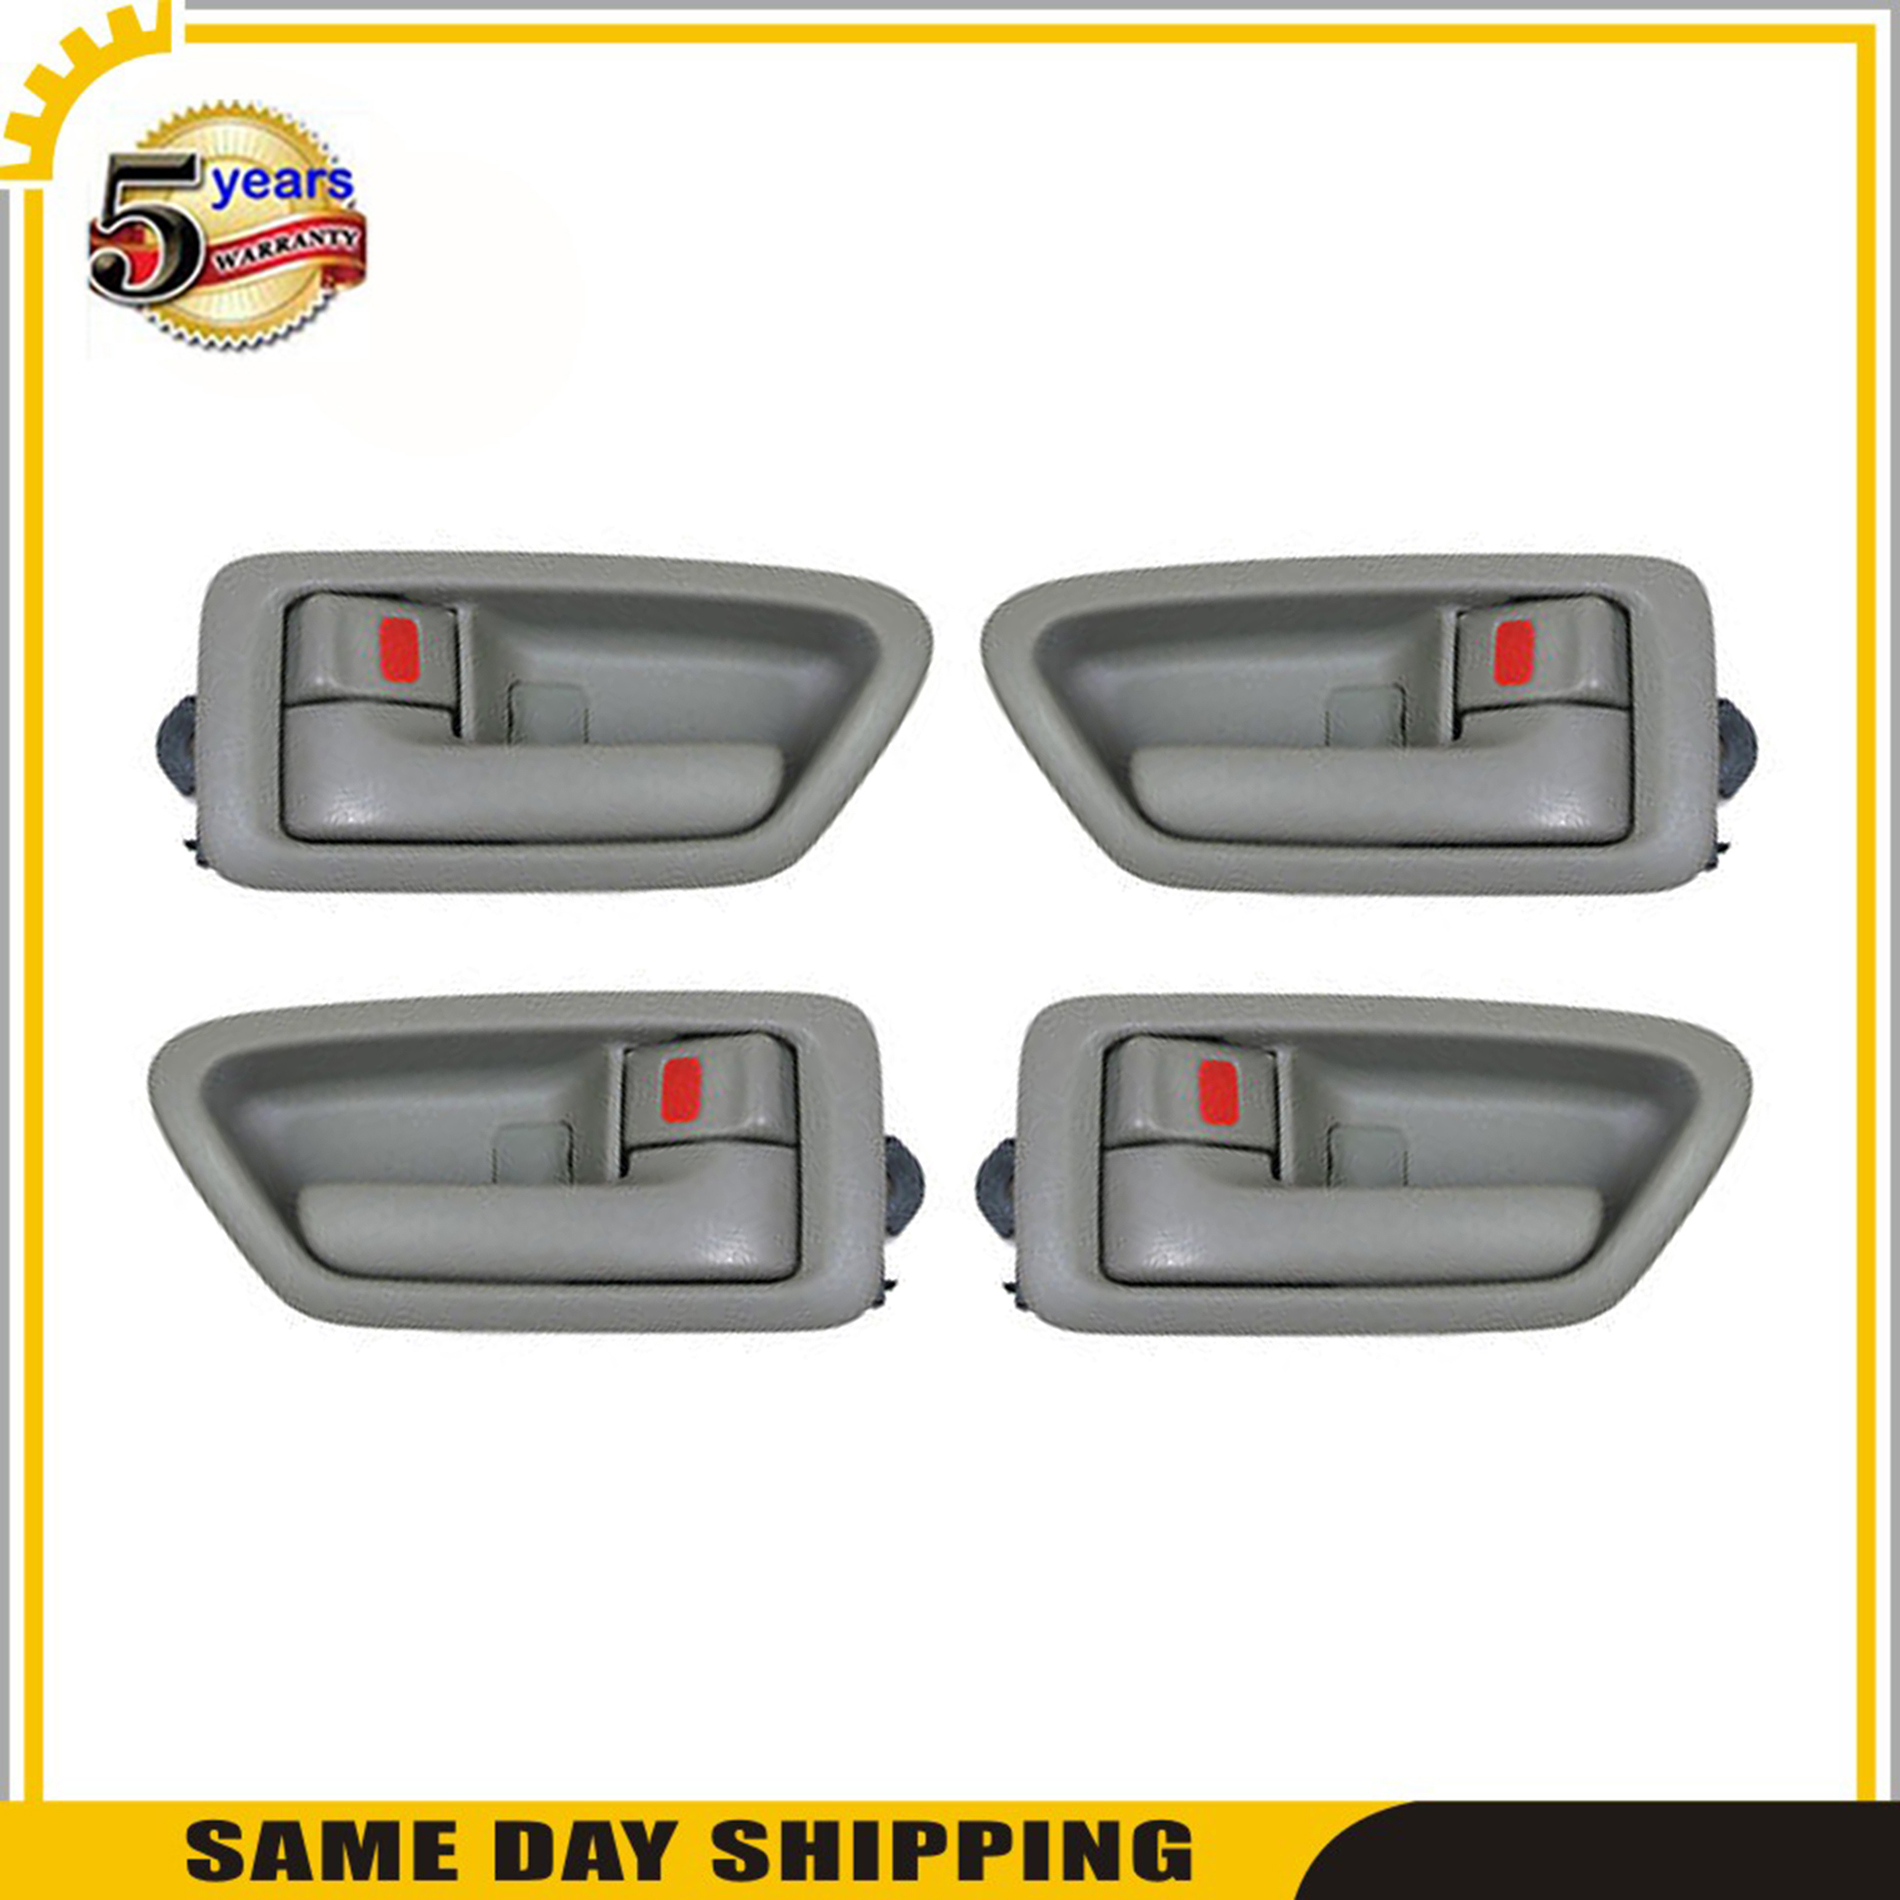 Door handles Front /& Rear Left /& Right 6Pcs for 1997-2001 Toyota Camry